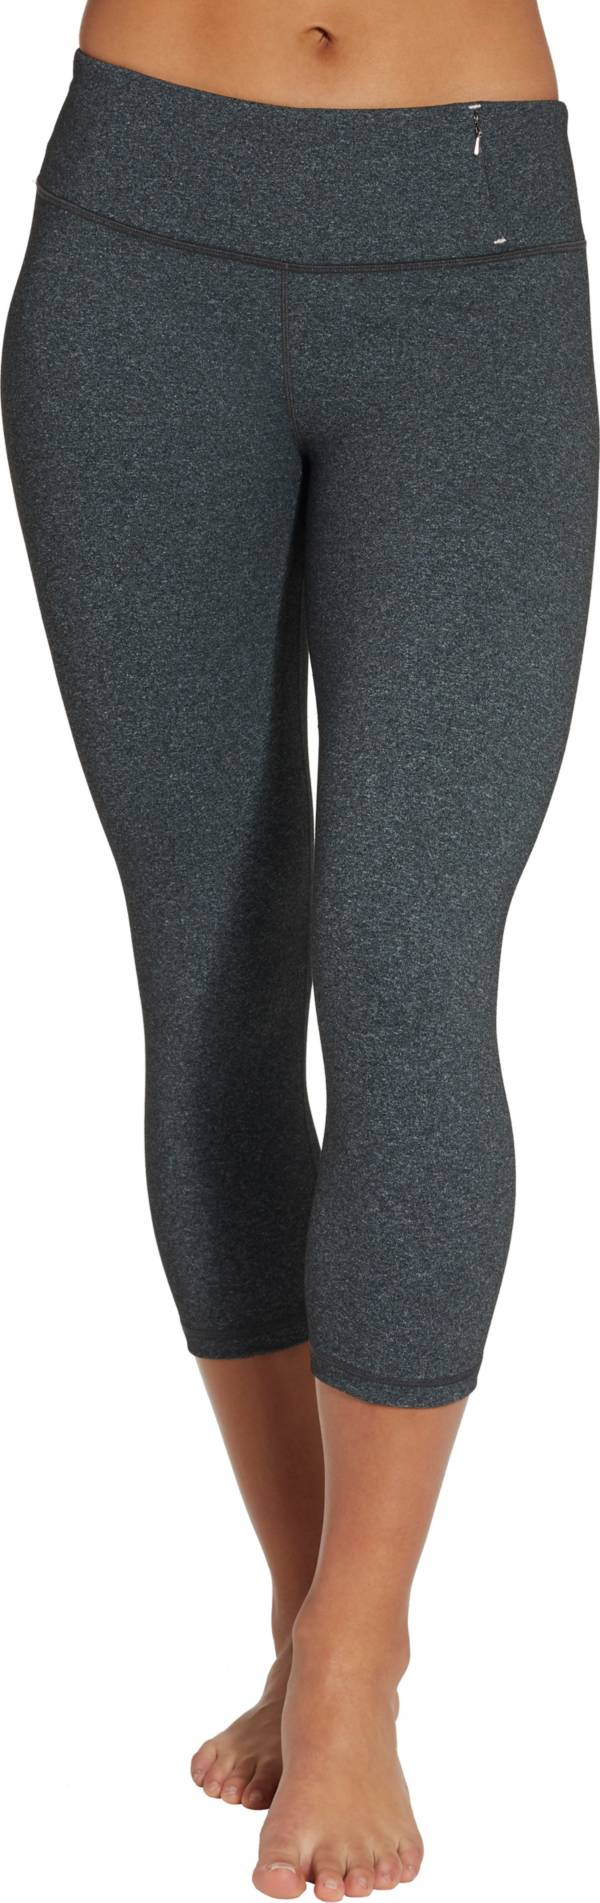 CALIA by Carrie Underwood Women's Heather Essential No Seam Capris product image